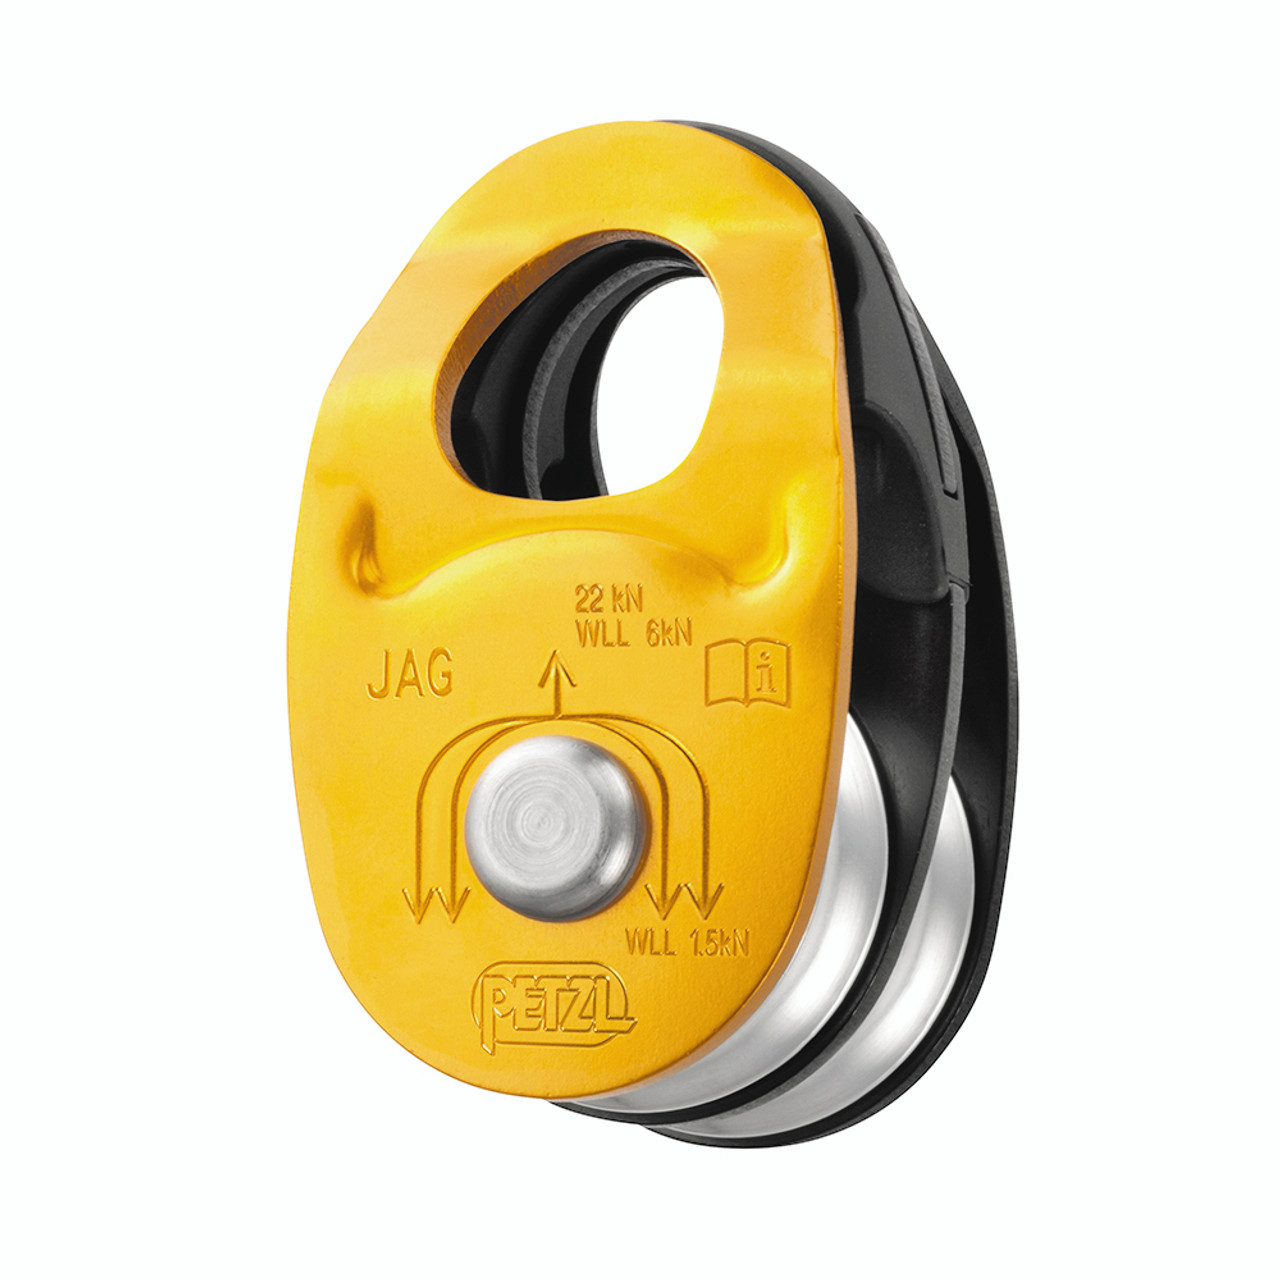 Petzl P52A PARTNER Ultra Compact High Efficiency Pulley